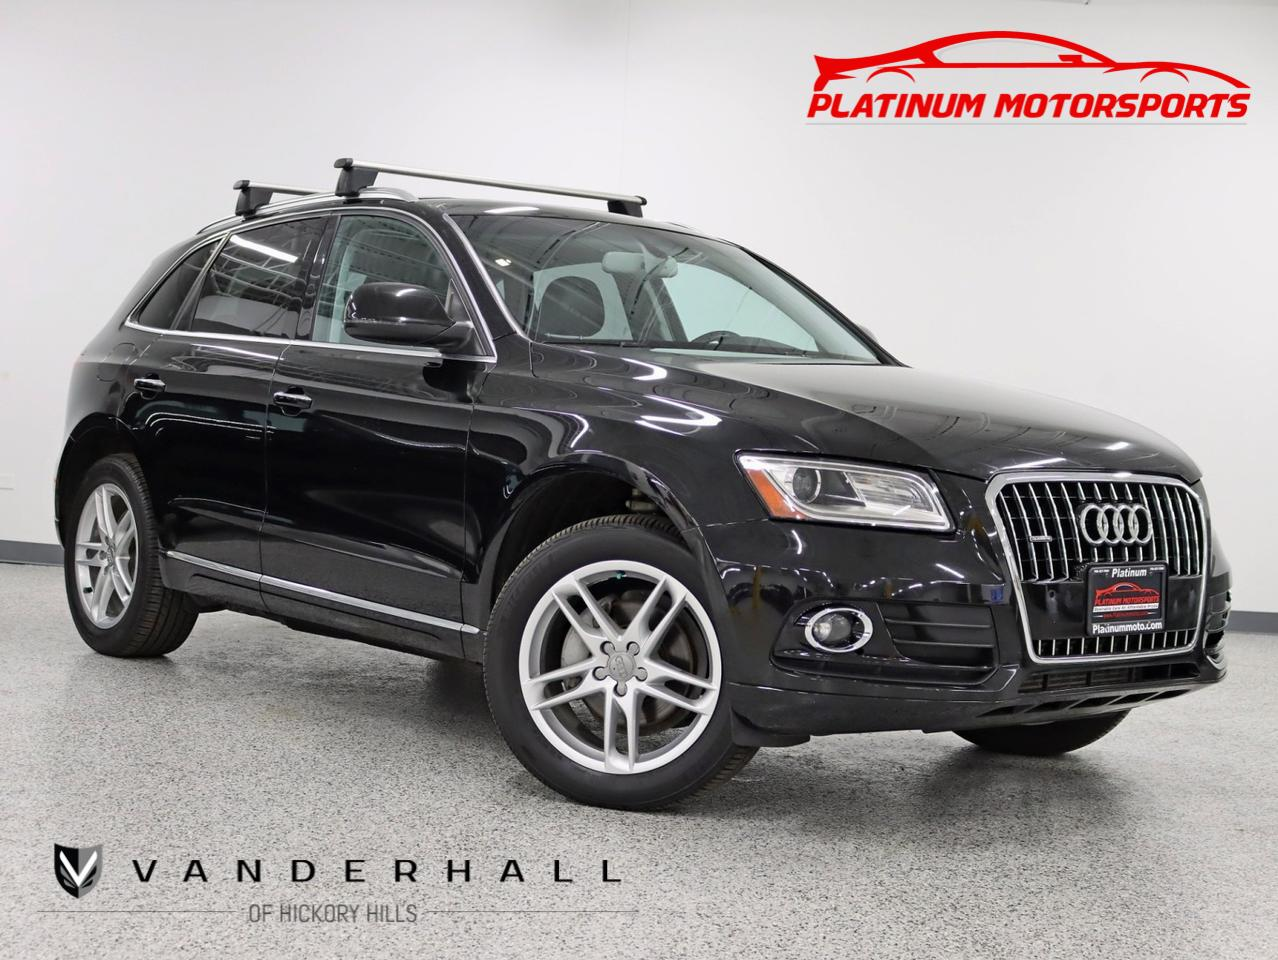 2015 Audi Q5 Premium Plus 1 Owner Tech Pkg Pano Leather Roof Racks Carfax Certified Loaded Hickory Hills IL